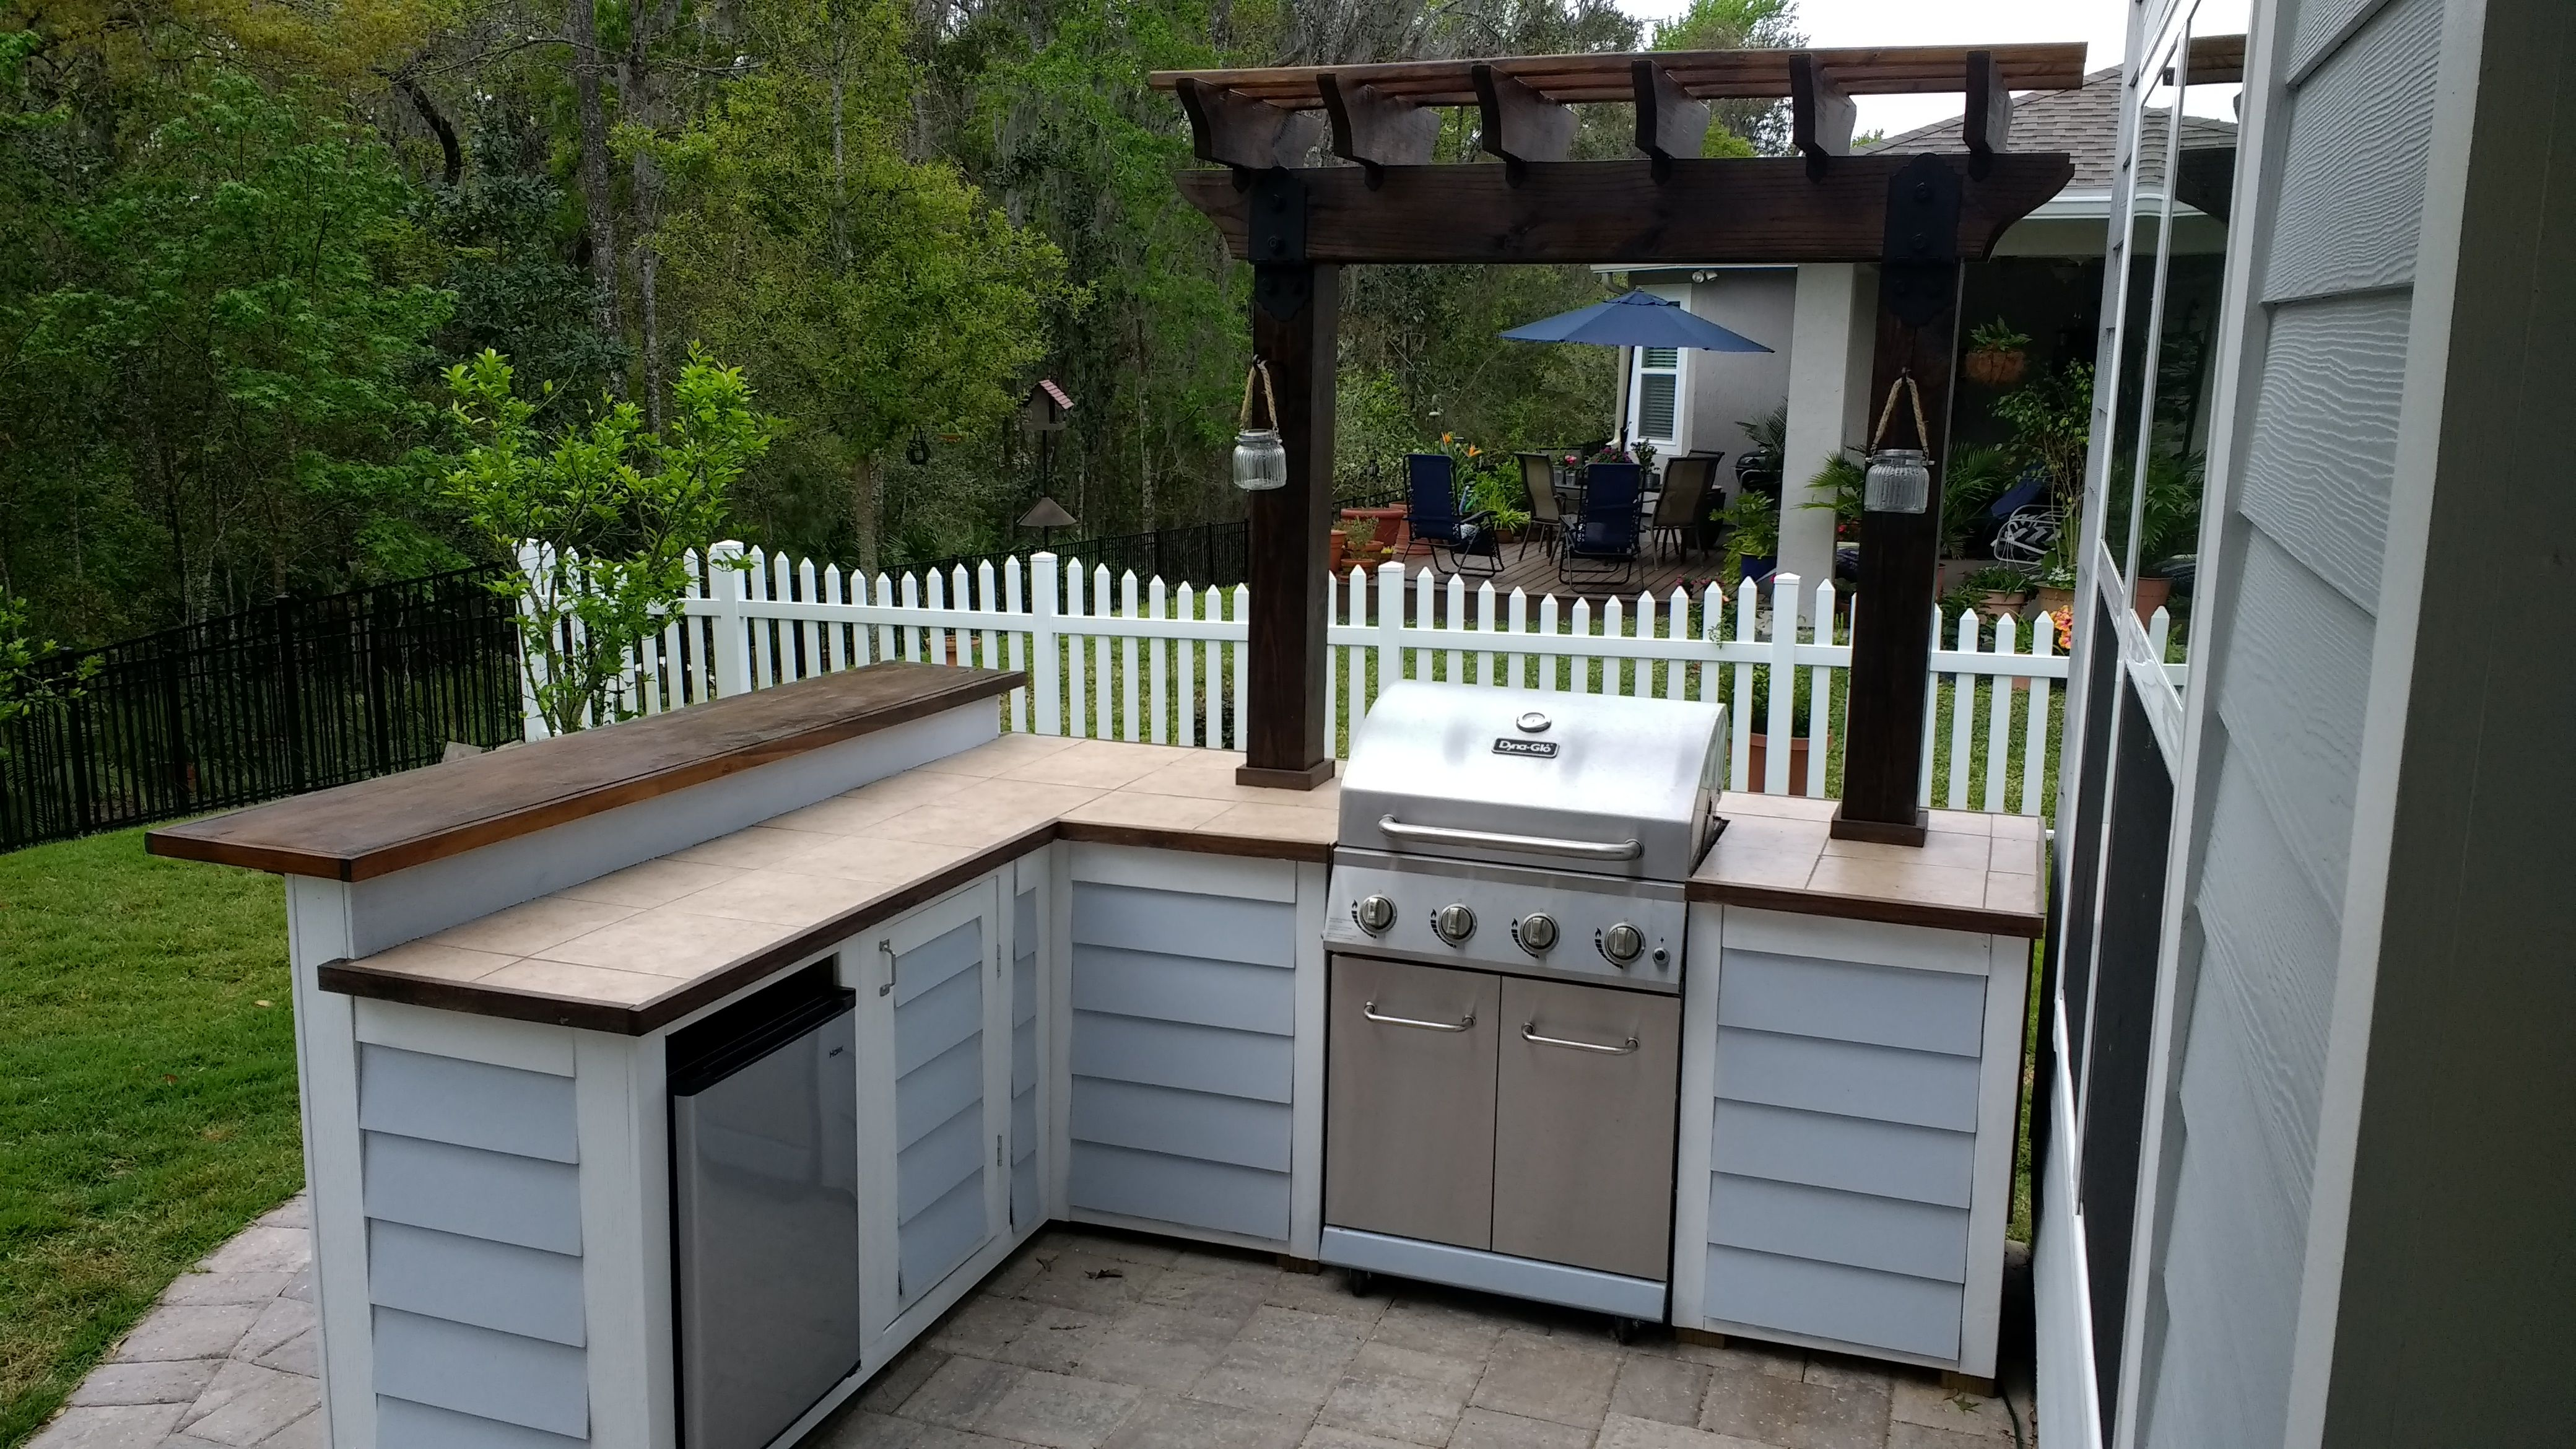 Ana White Outdoor Bar Grill Surround With 2 Post Pergola Diy Projects Pergola Patio Ideas Diy Outdoor Bar And Grill Outdoor Patio Bar